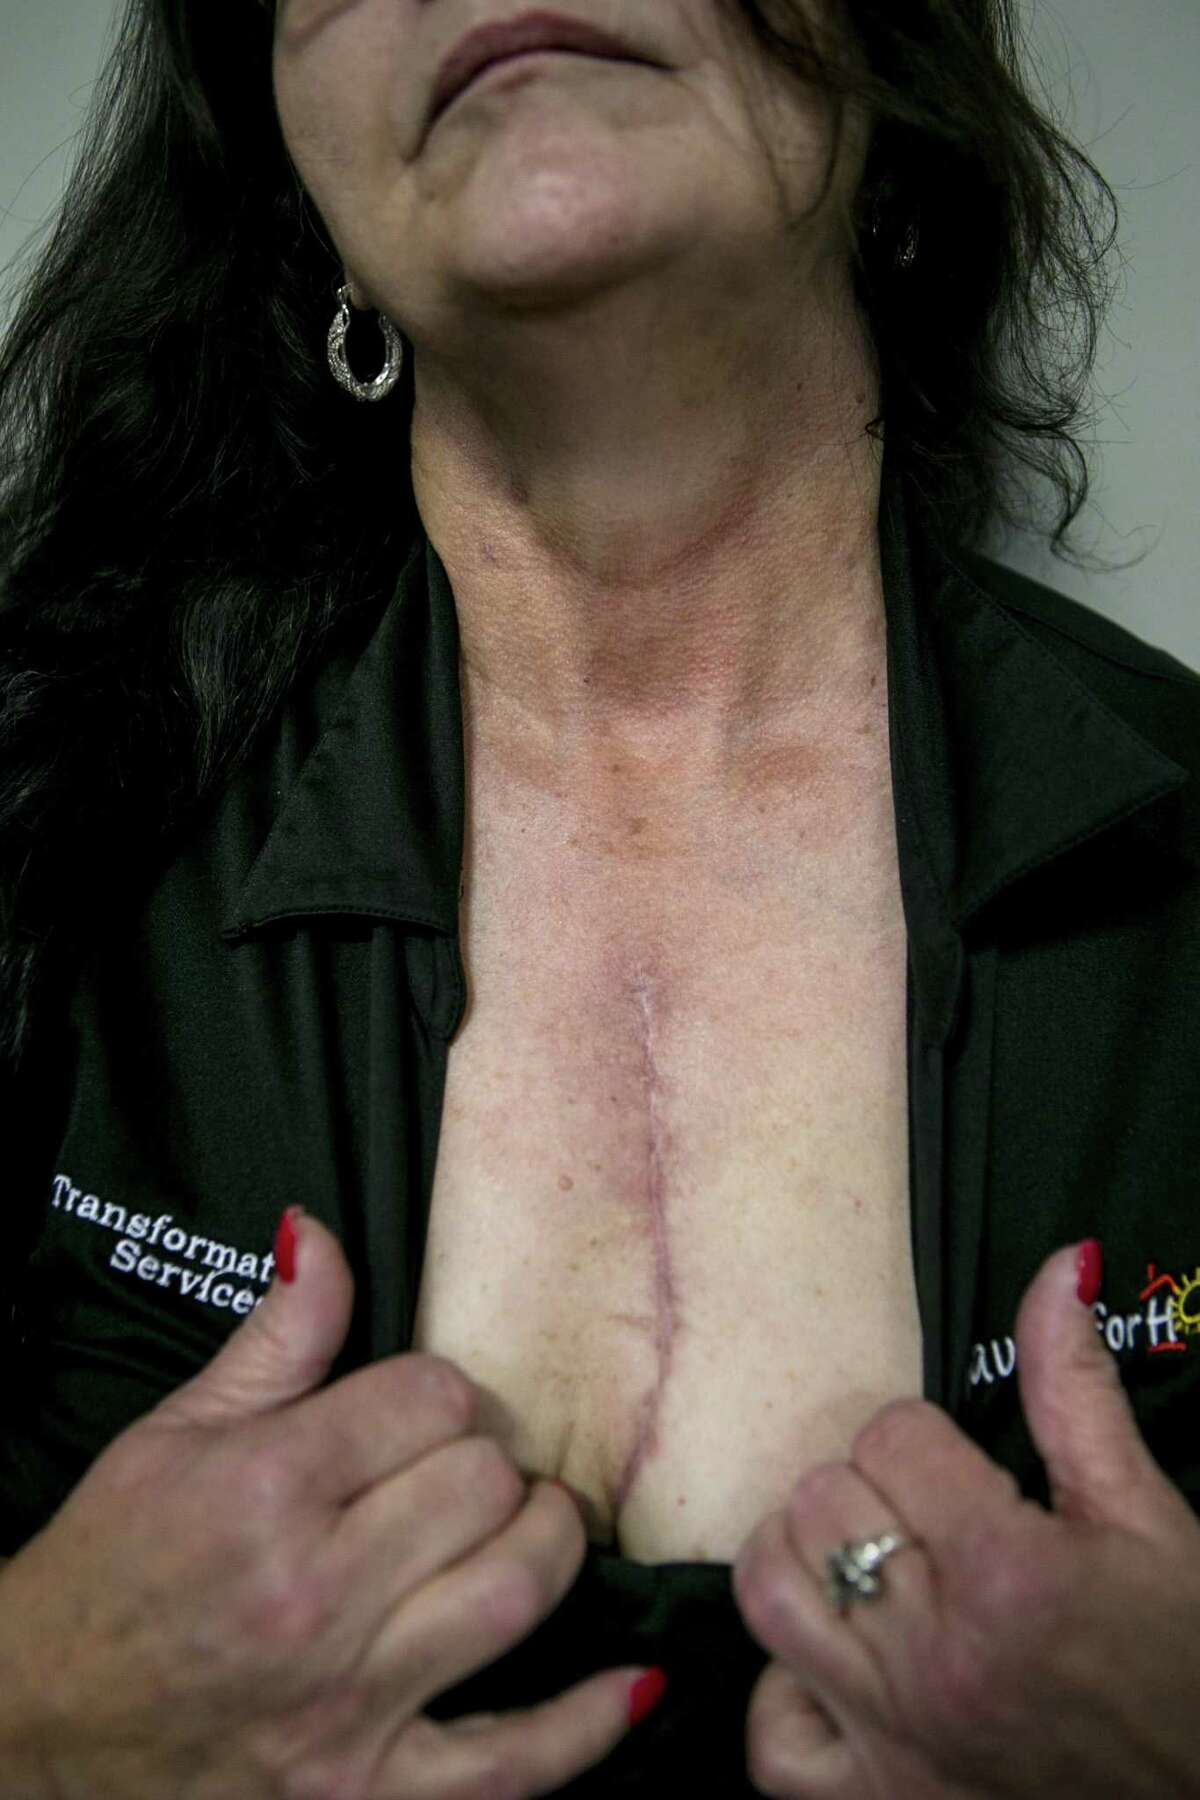 Carole Lewis shows the scar from the heart surgery she required after years of injecting methamphetamine. She's not ashamed of the scar - it's an outer sign of her determination to stay sober and off drugs.